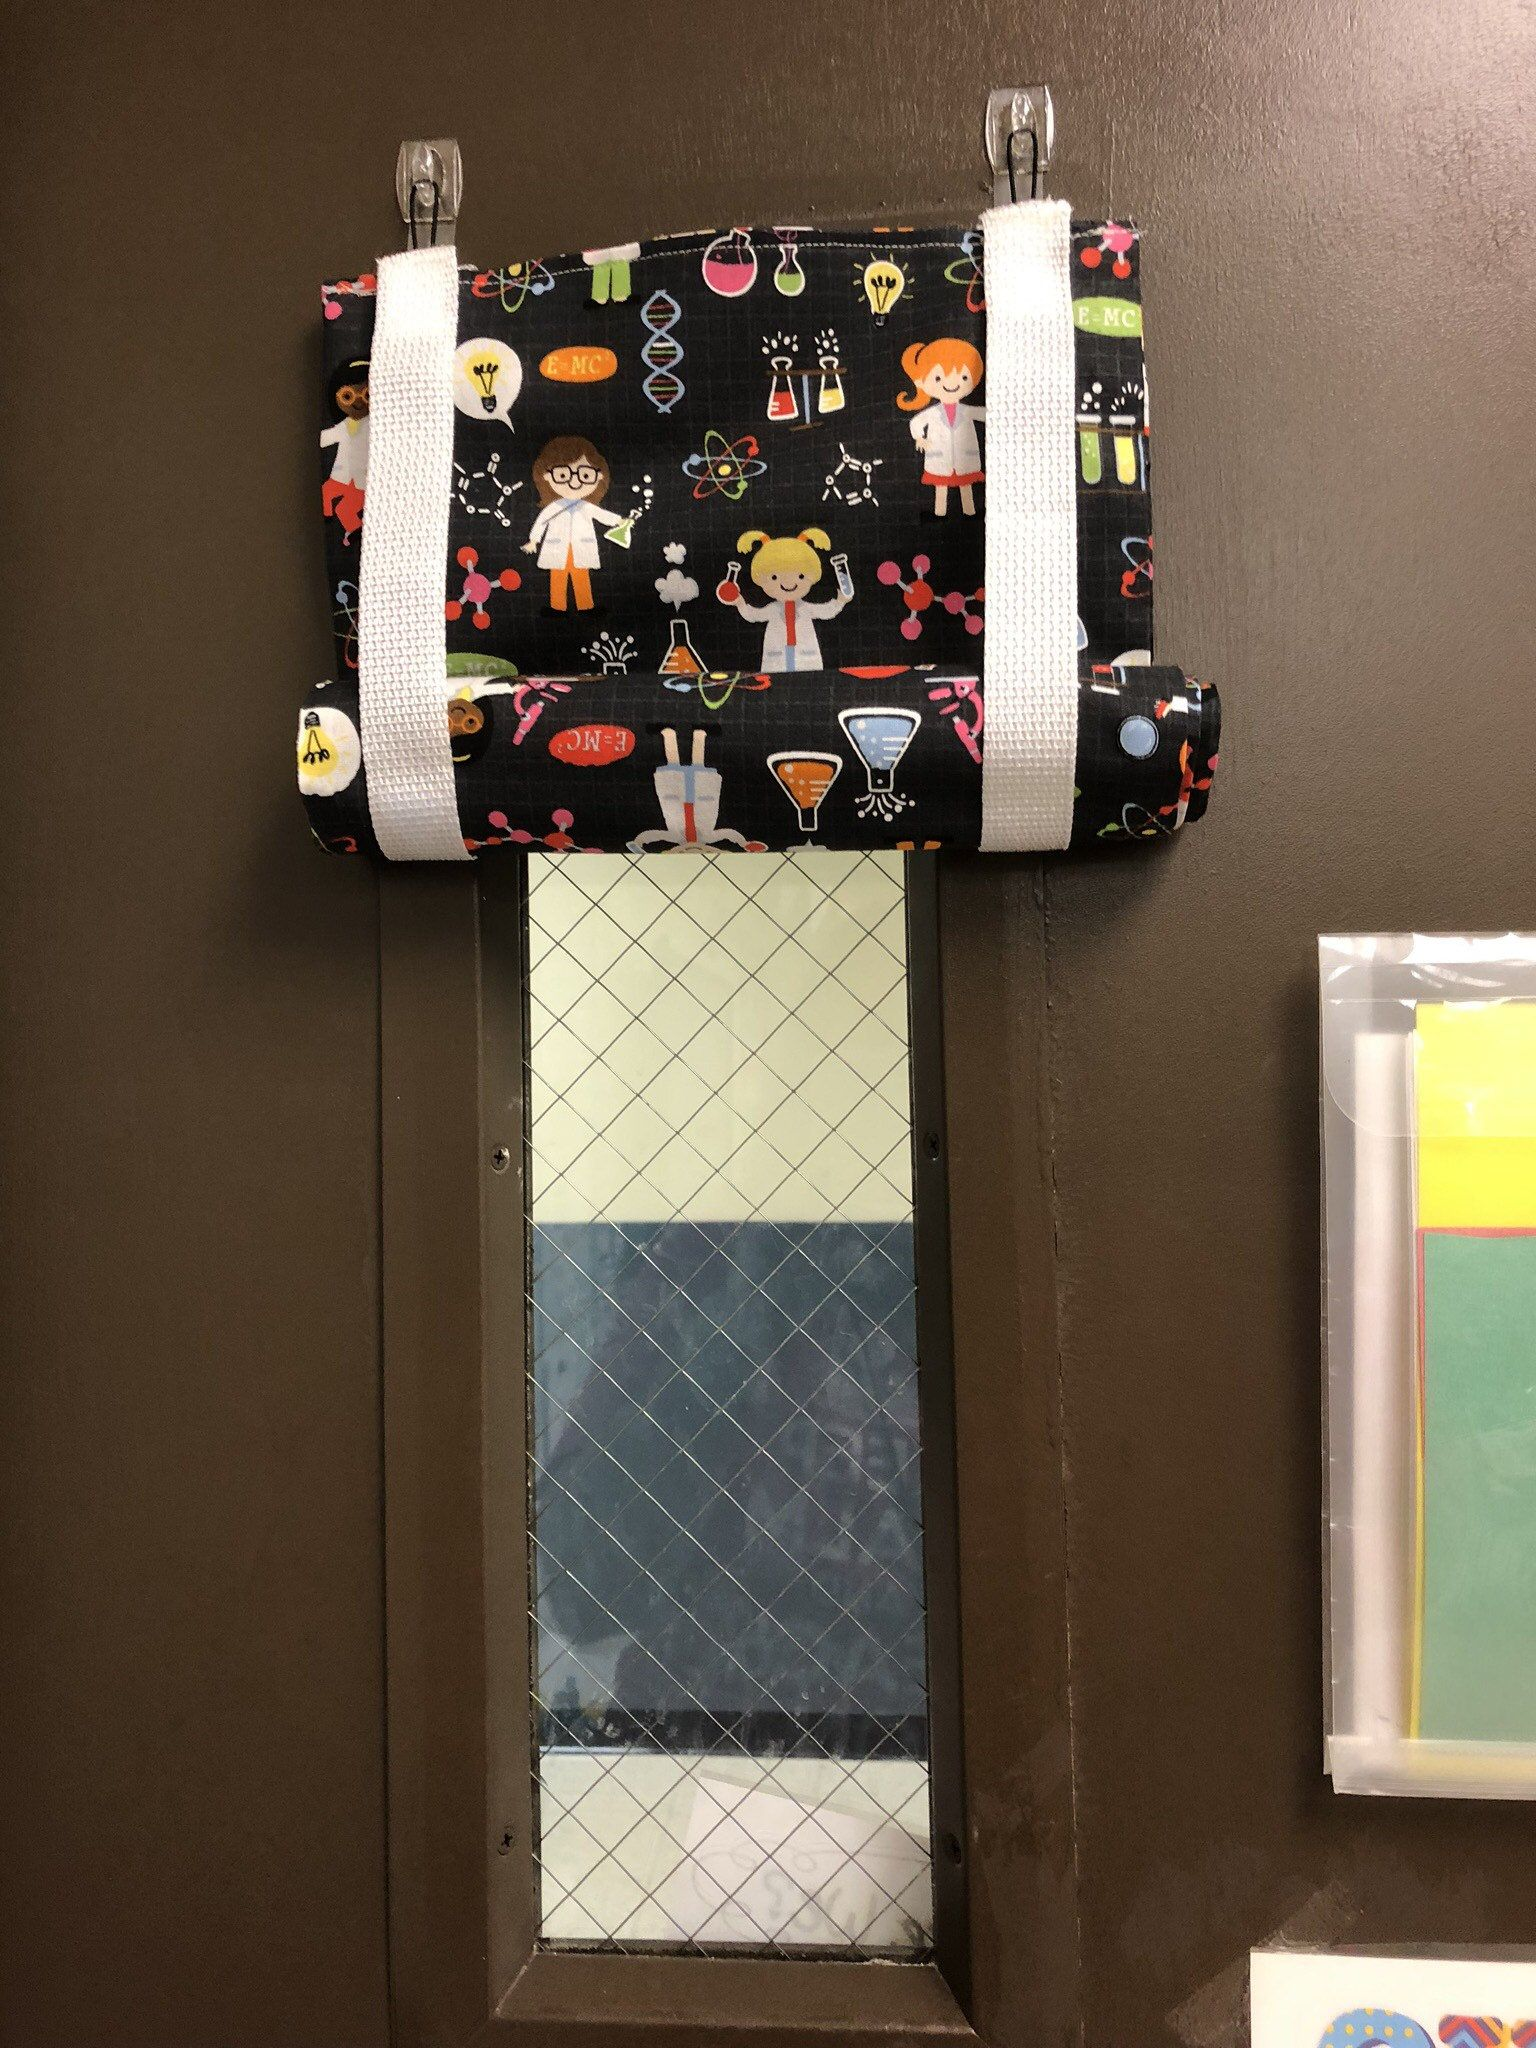 Classroom Door Window Curtain Emergency Quick Coverage At School With Images Curtain For Door Window Classroom Curtains Door Curtains Designs